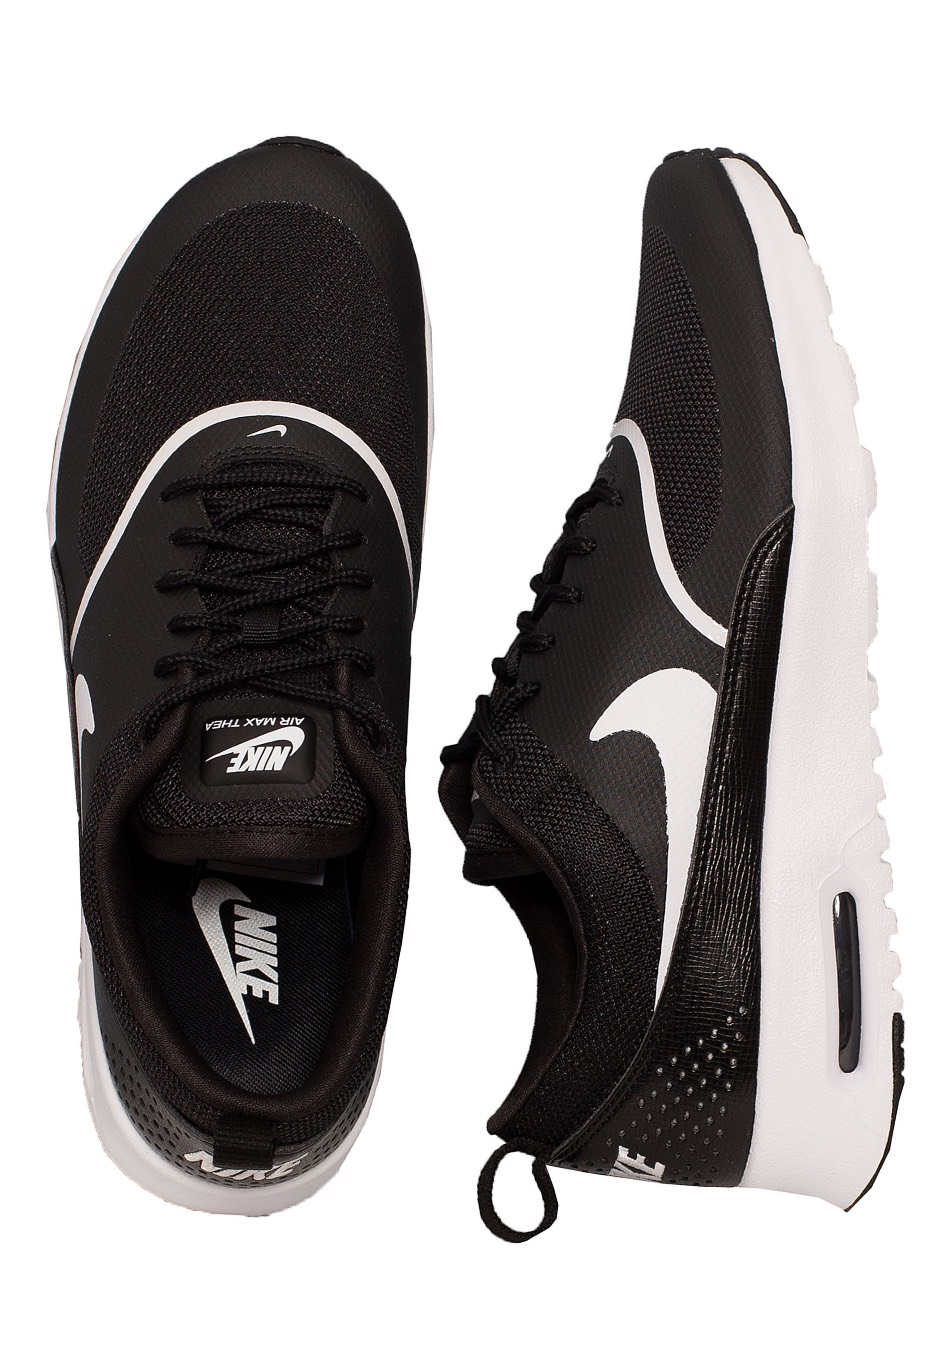 fb869ca98f Nike - Air Max Thea Black/White - Girl Shoes - Impericon.com UK